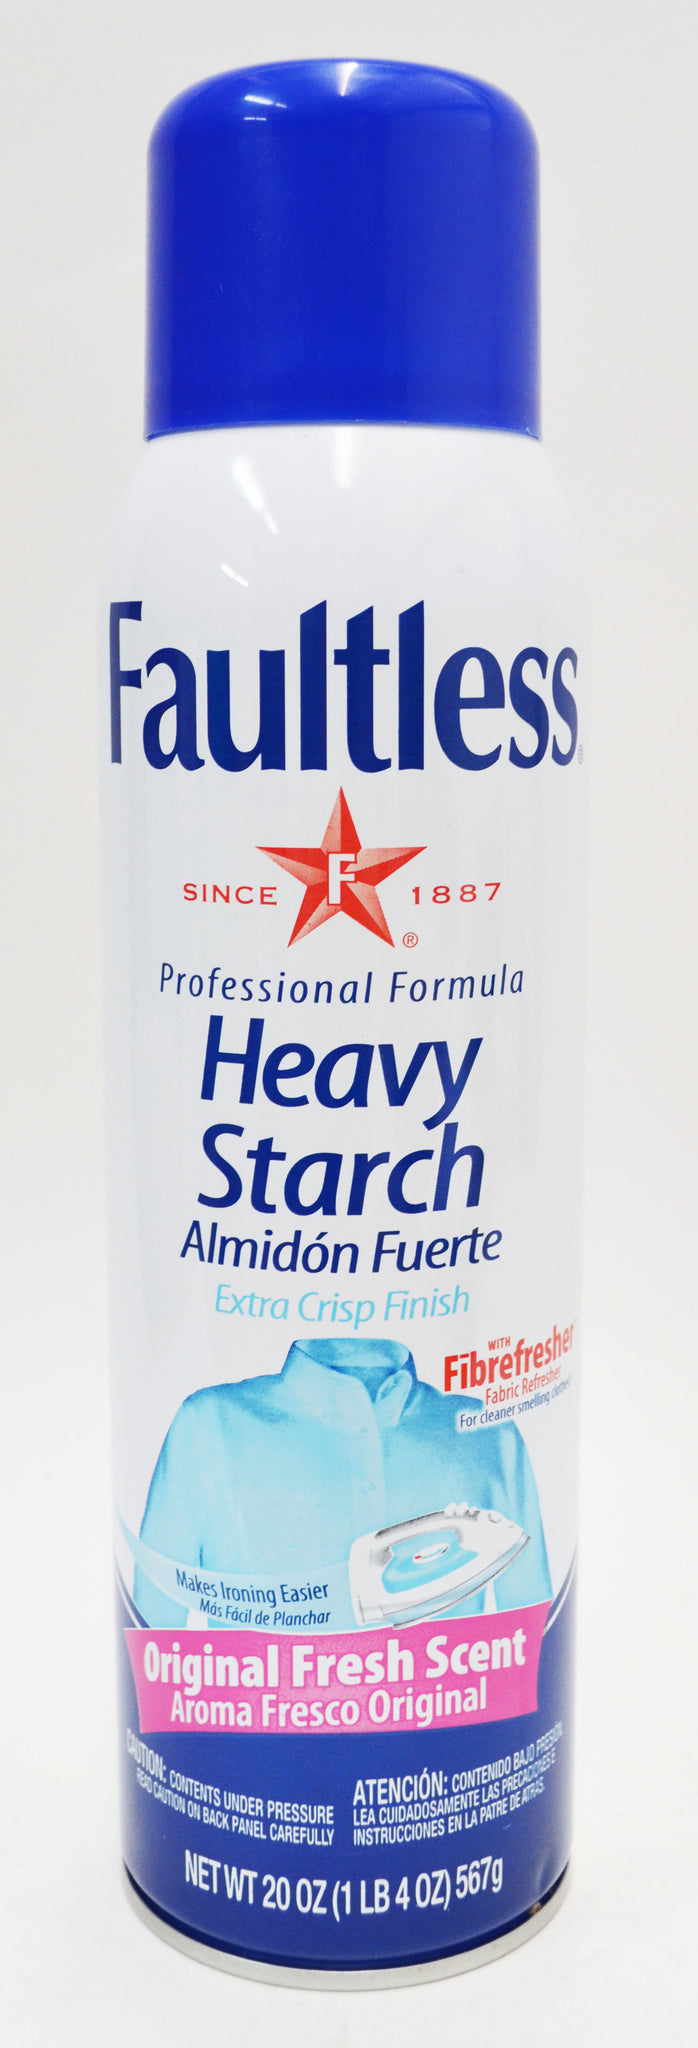 Faultless Heavy Starch - Original Scent